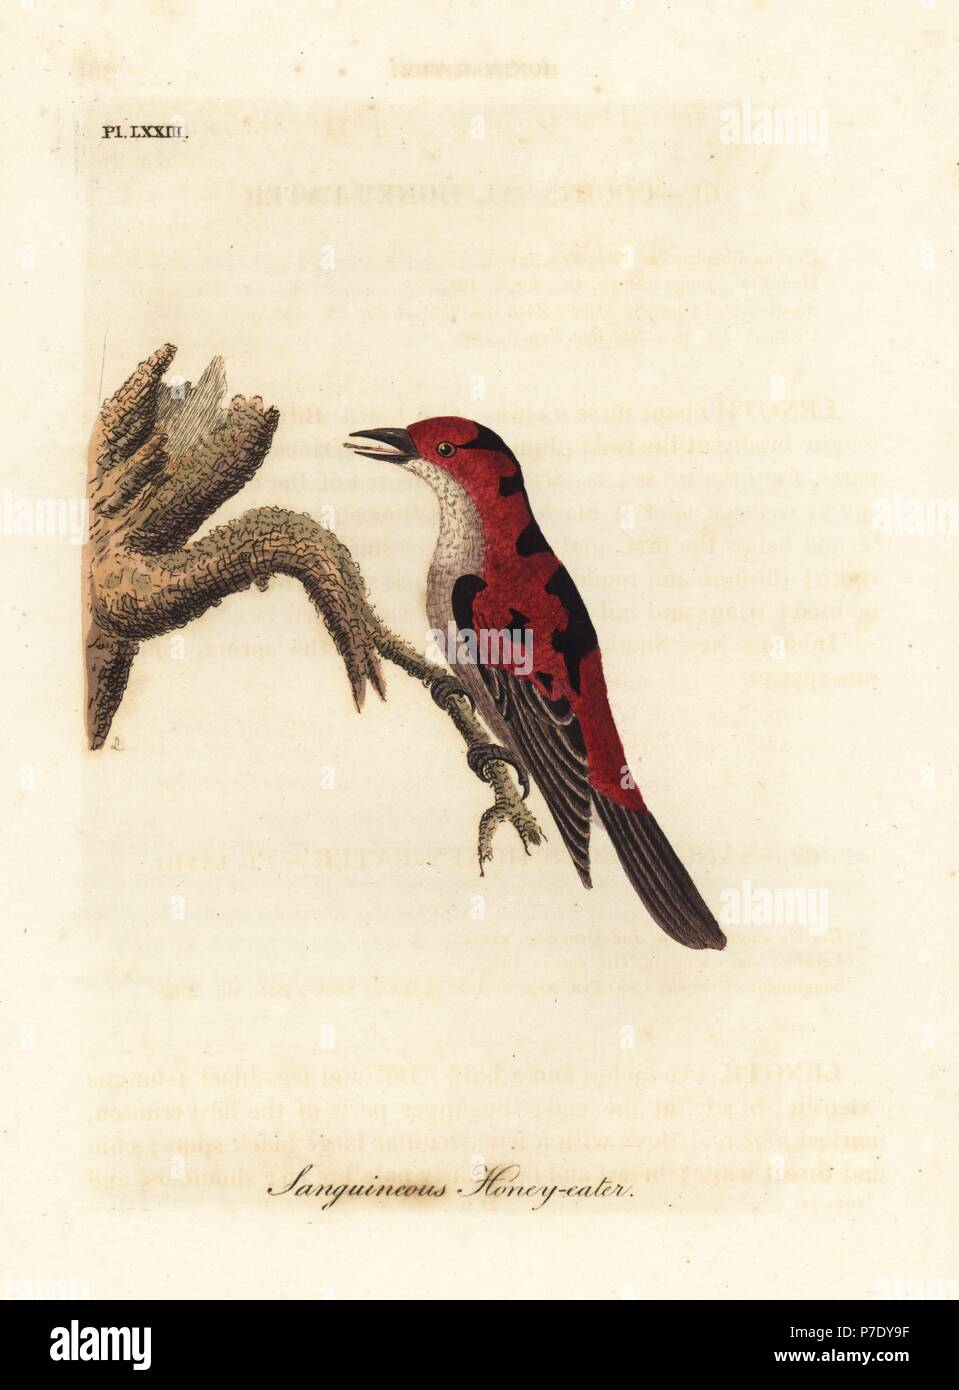 Scarlet myzomela, Myzomela sanguinolenta (Sanguineous honey-eater, Certhia sanguinolenta). Australia. Handcoloured copperplate drawn and engraved by John Latham from his own A General History of Birds, Winchester, 1822. - Stock Image